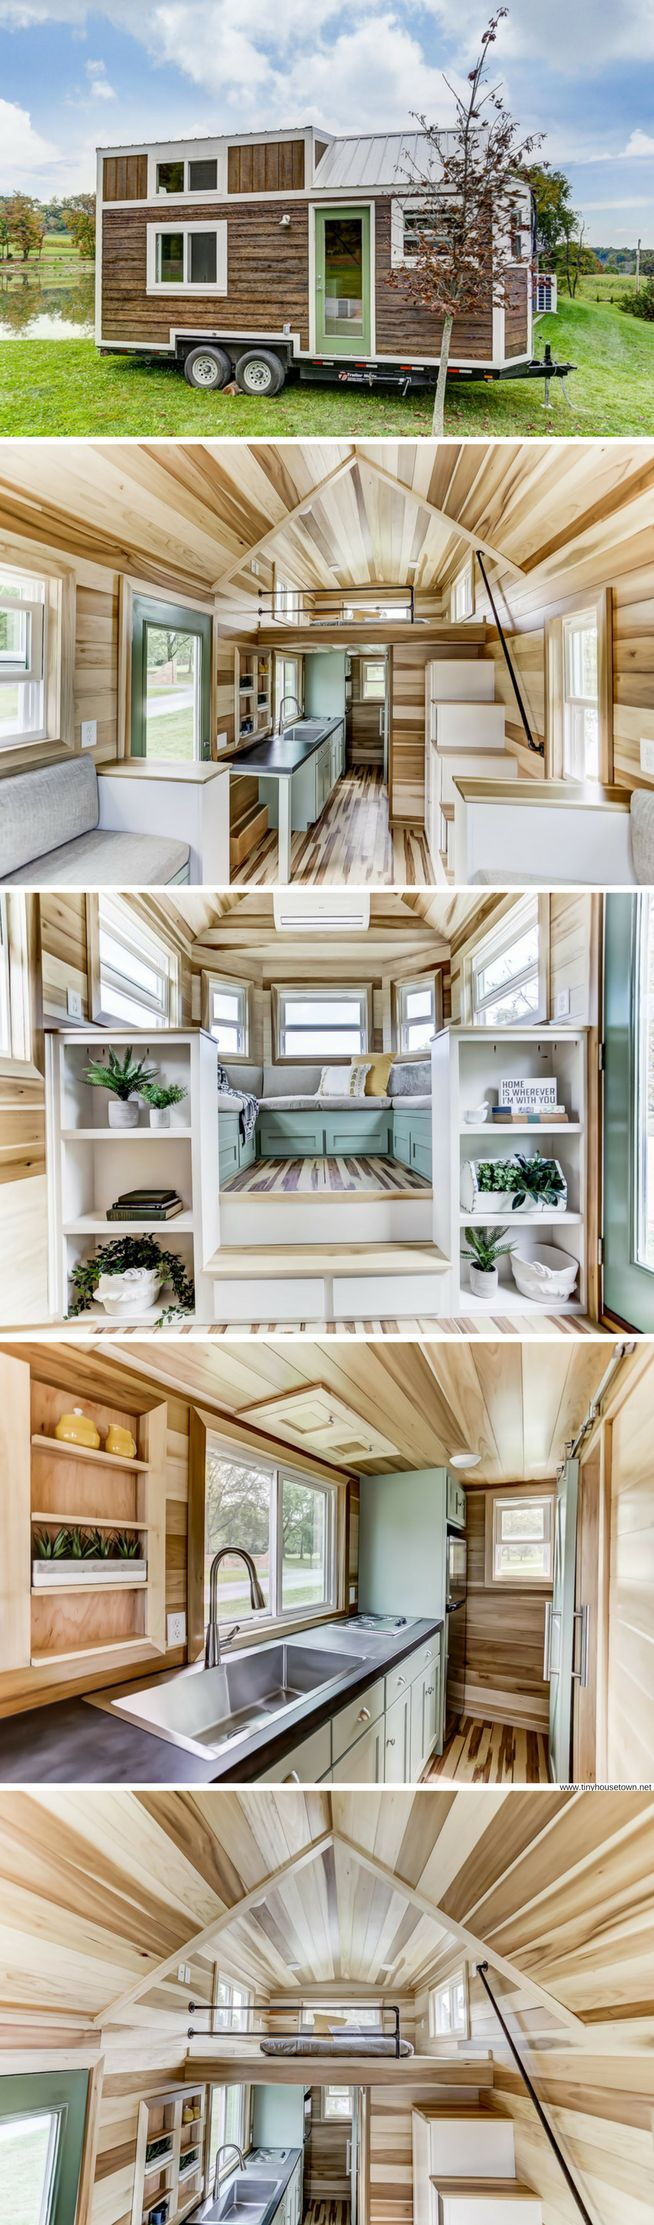 The Point: a 240 sq ft tiny house from Modern Tiny Living